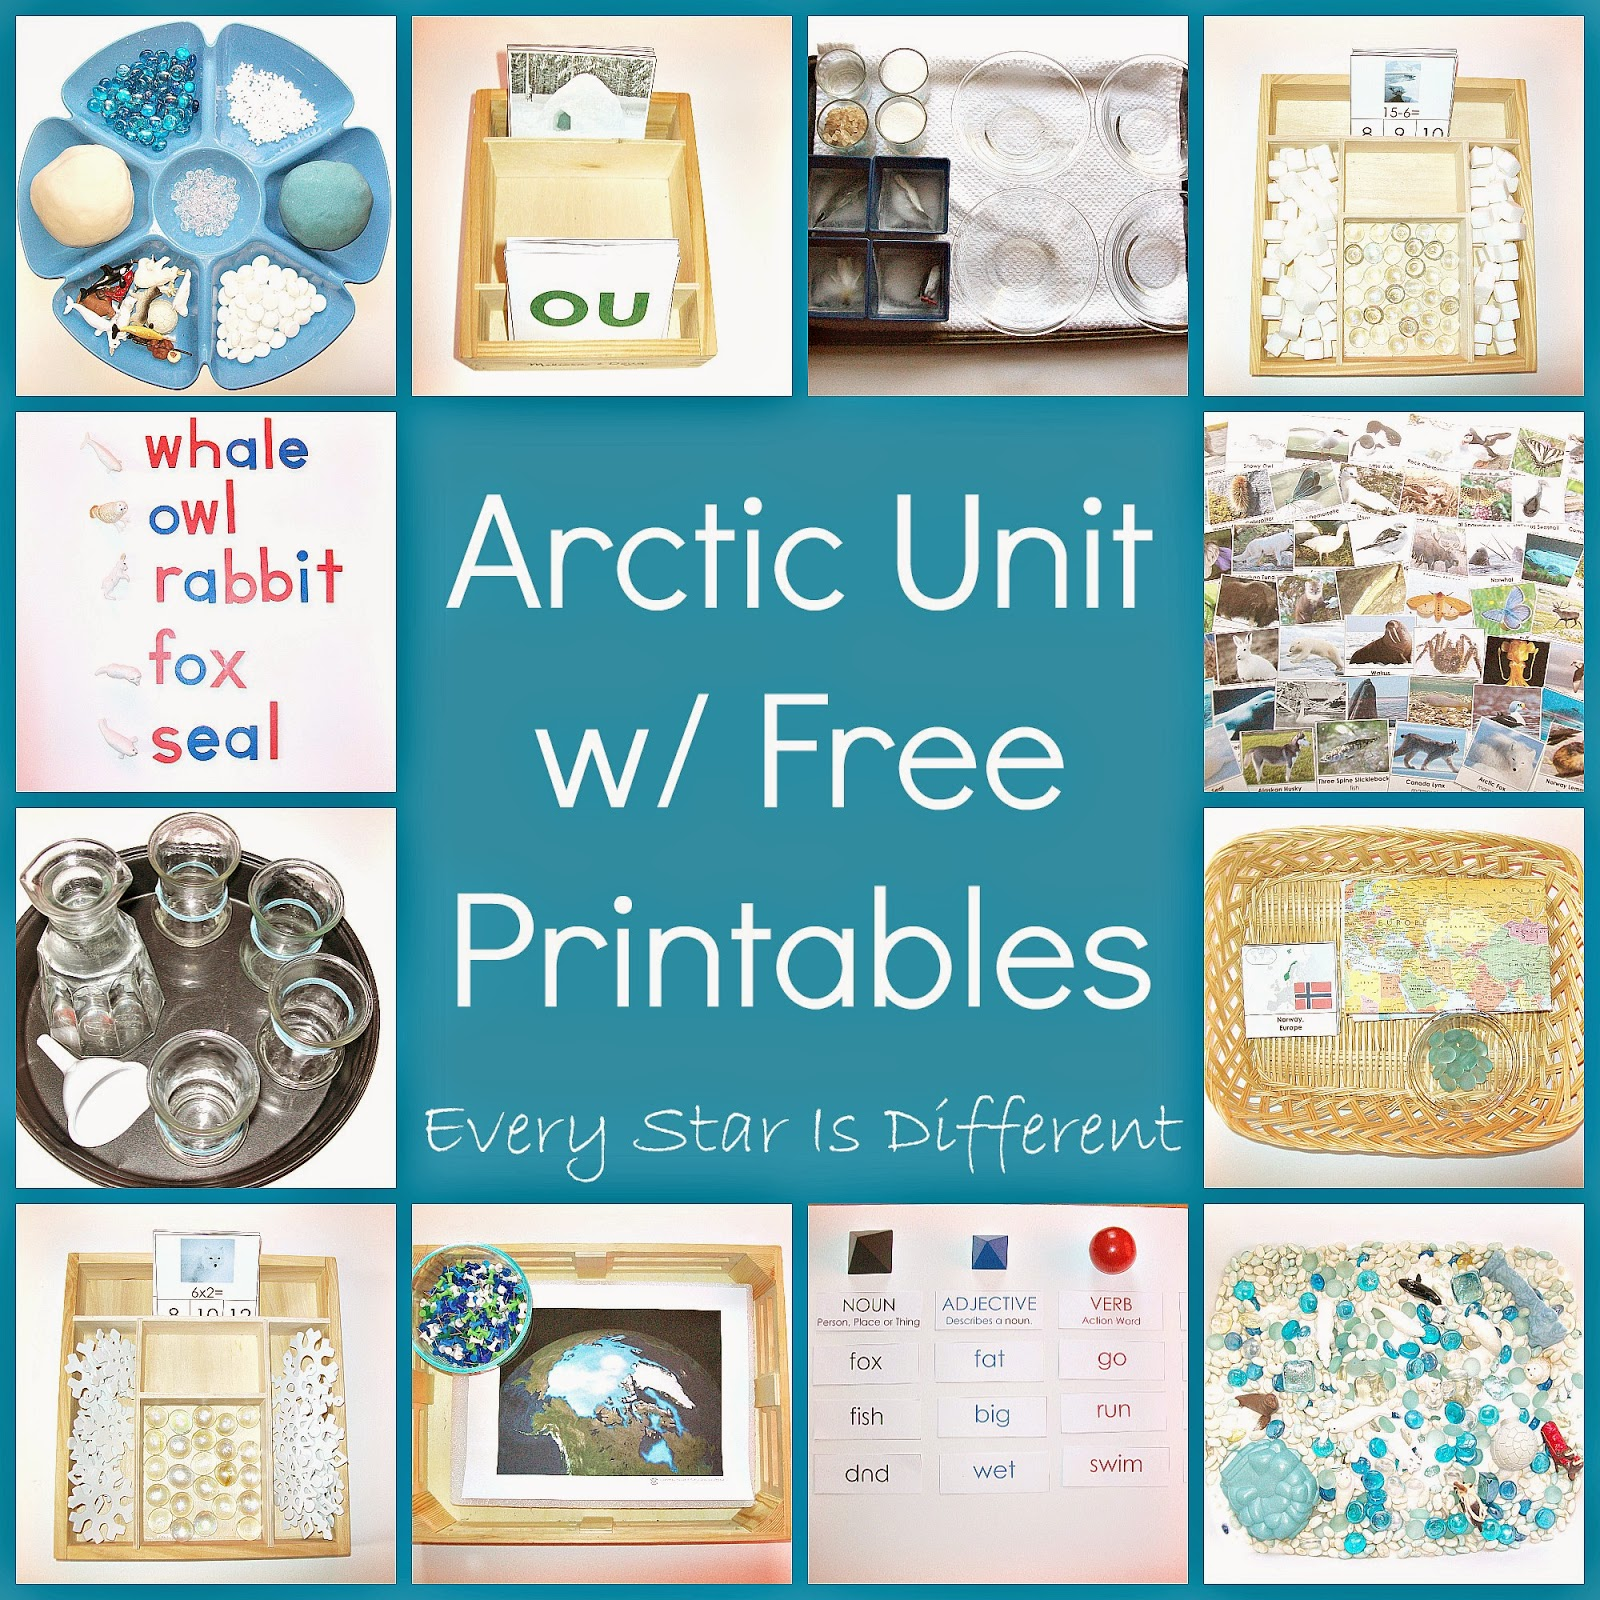 Arctic Unit w/ Free Printables - Every Star Is Different